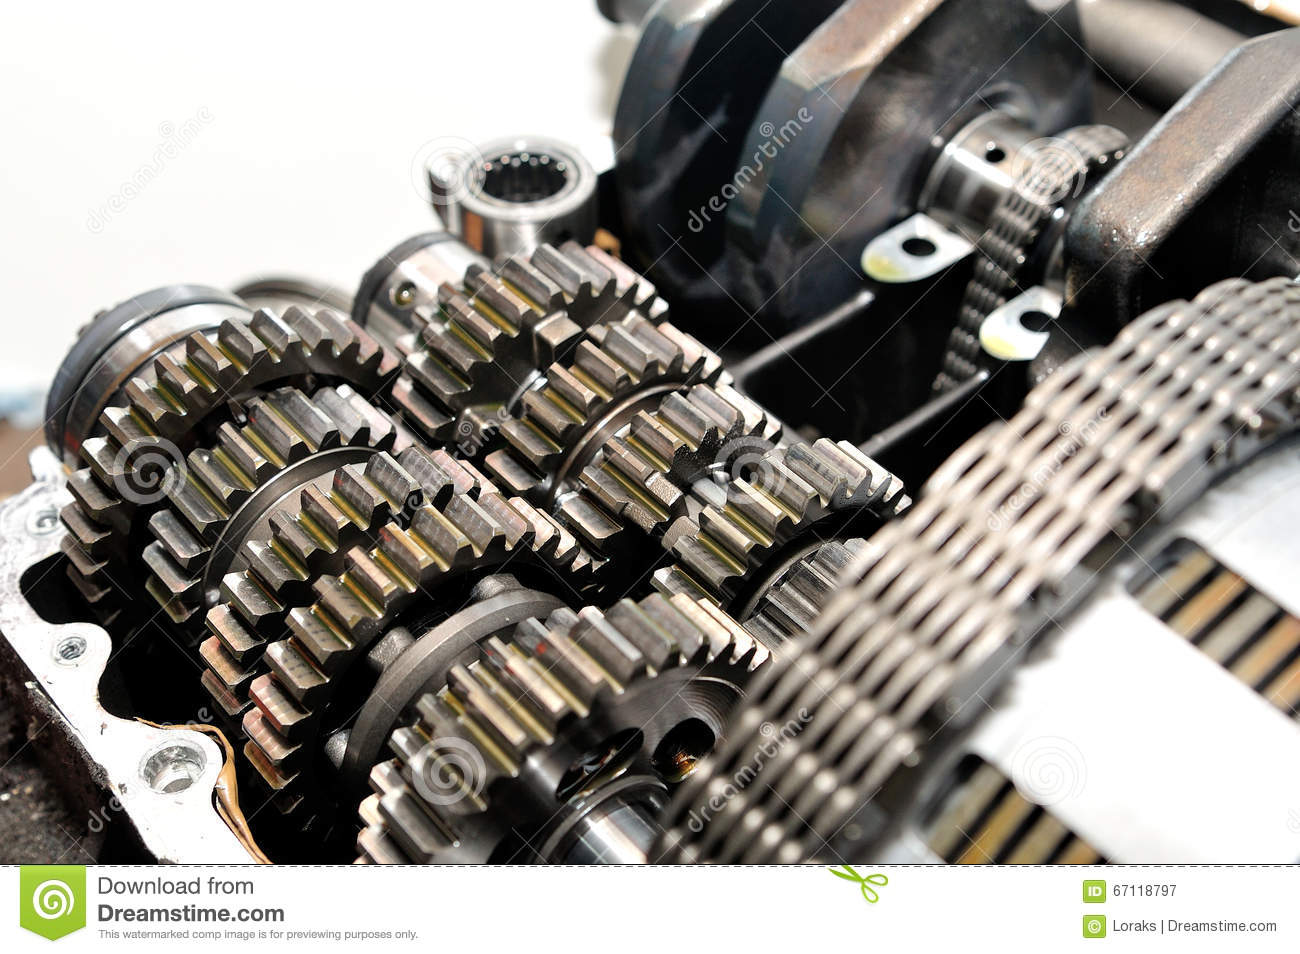 hight resolution of motorcycle gearbox with clutch in front